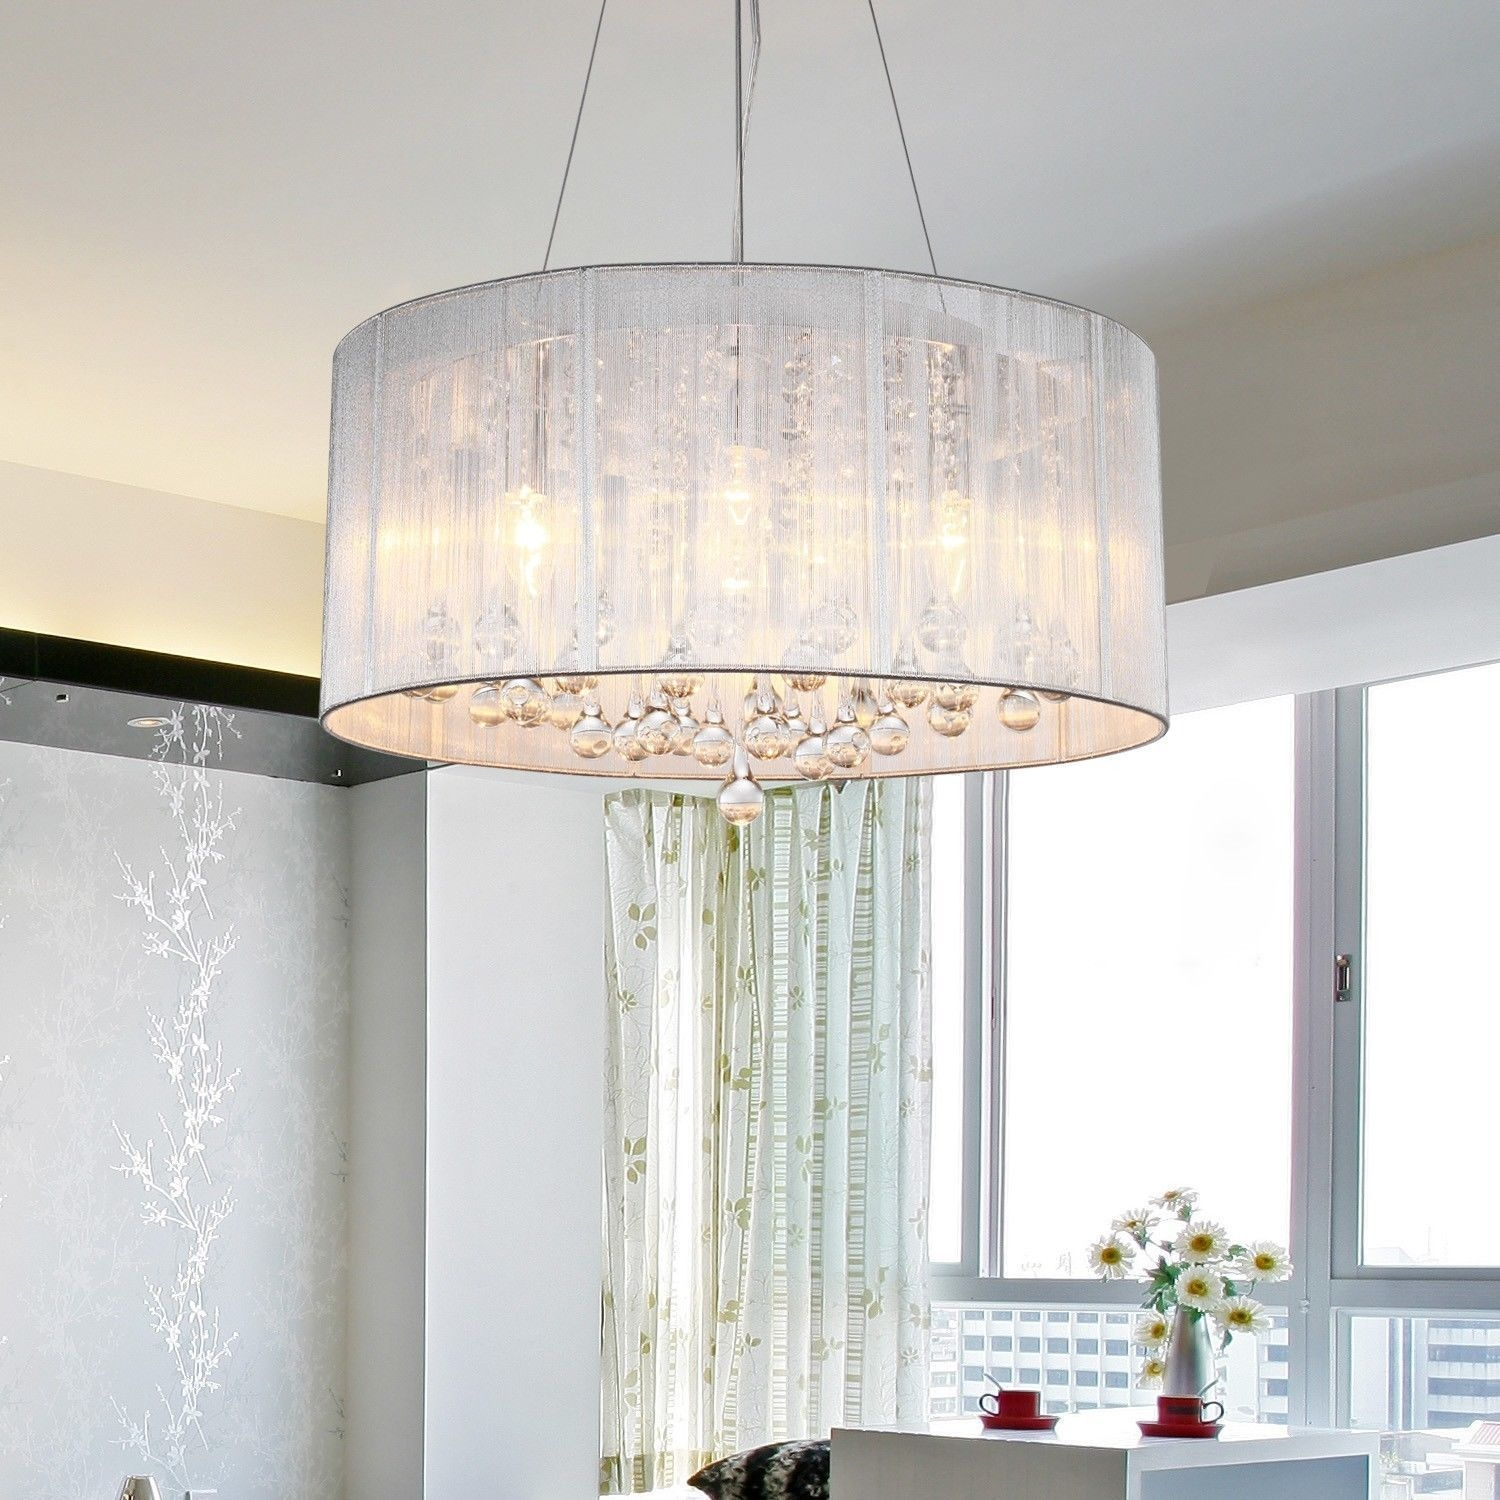 Very Awesome Lamp Shade Chandelier Best Home Decor Inspirations Regarding Lampshade Chandeliers (Image 25 of 25)